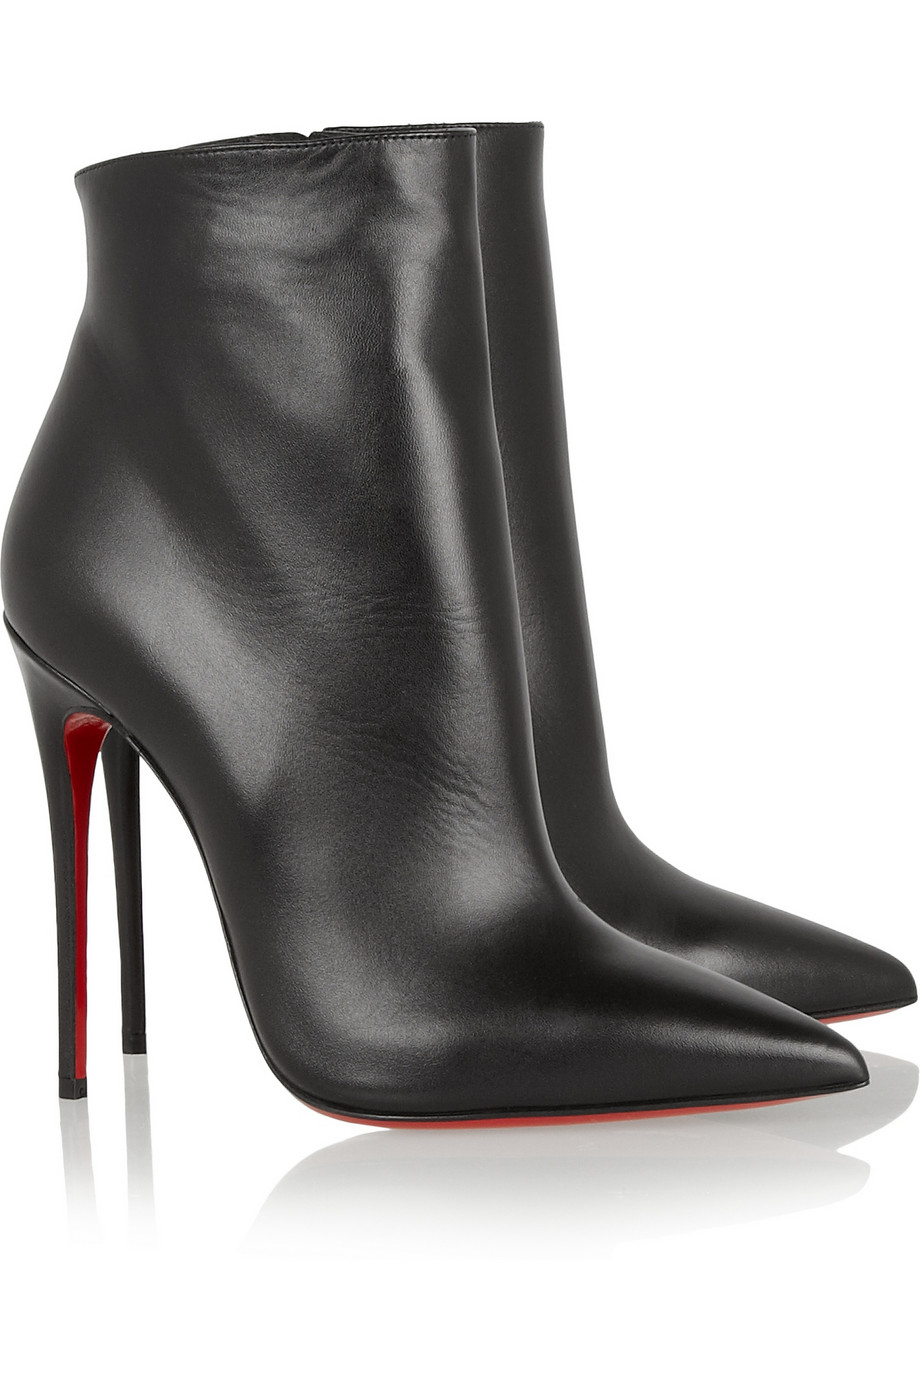 red louboutins men - christian louboutin belle leather ankle boots | Tasting asia